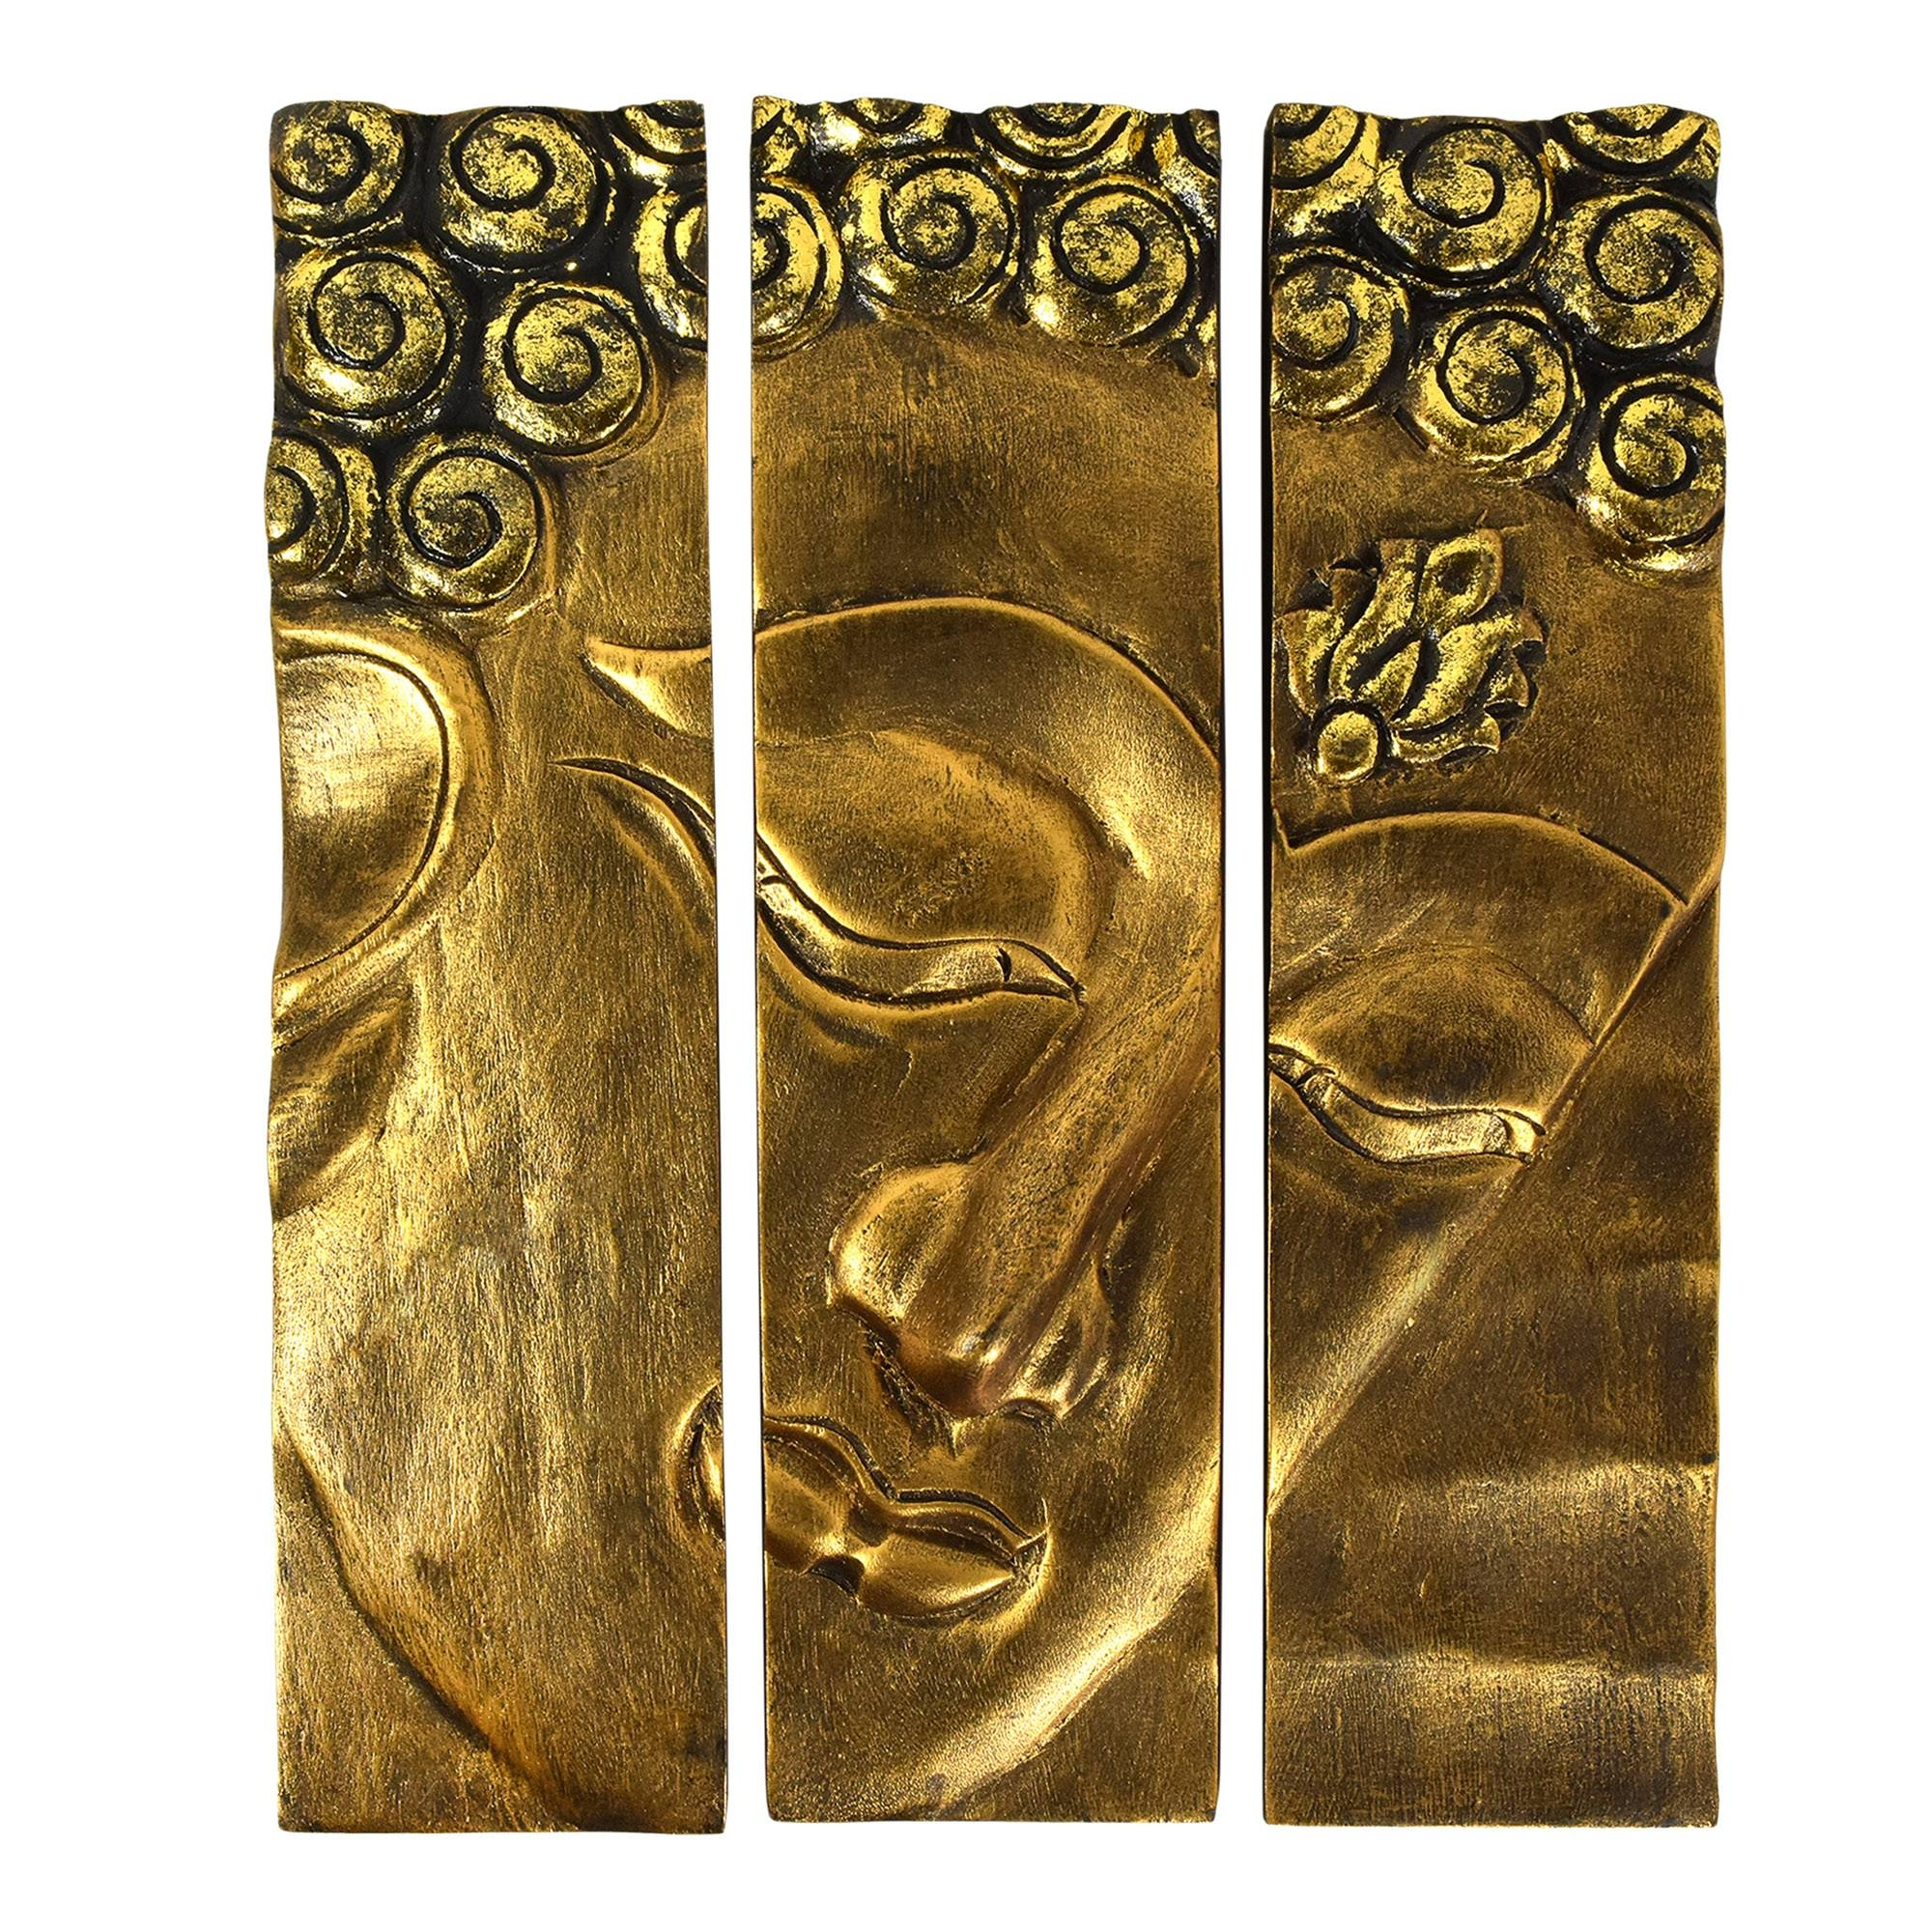 Golden Buddha Face Three Panel Hanging Handmade Wall Art 12X15 Inside 2017 Buddha Wood Wall Art (Gallery 7 of 20)